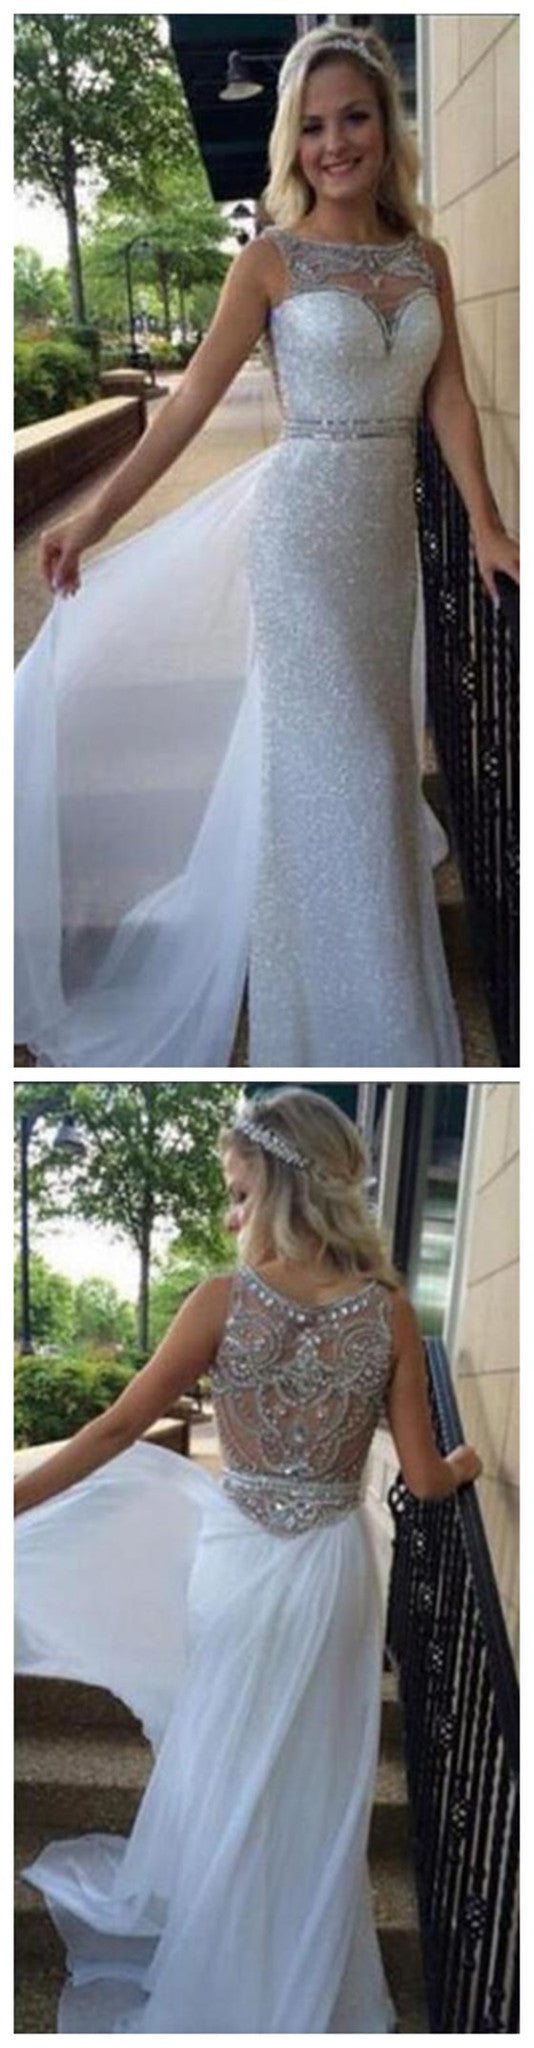 Long Sheath Sleeveless Sparkly Rhinestone Back  Elegant Gorgeous Full Sequins Wedding Party Prom Dress, WD0127